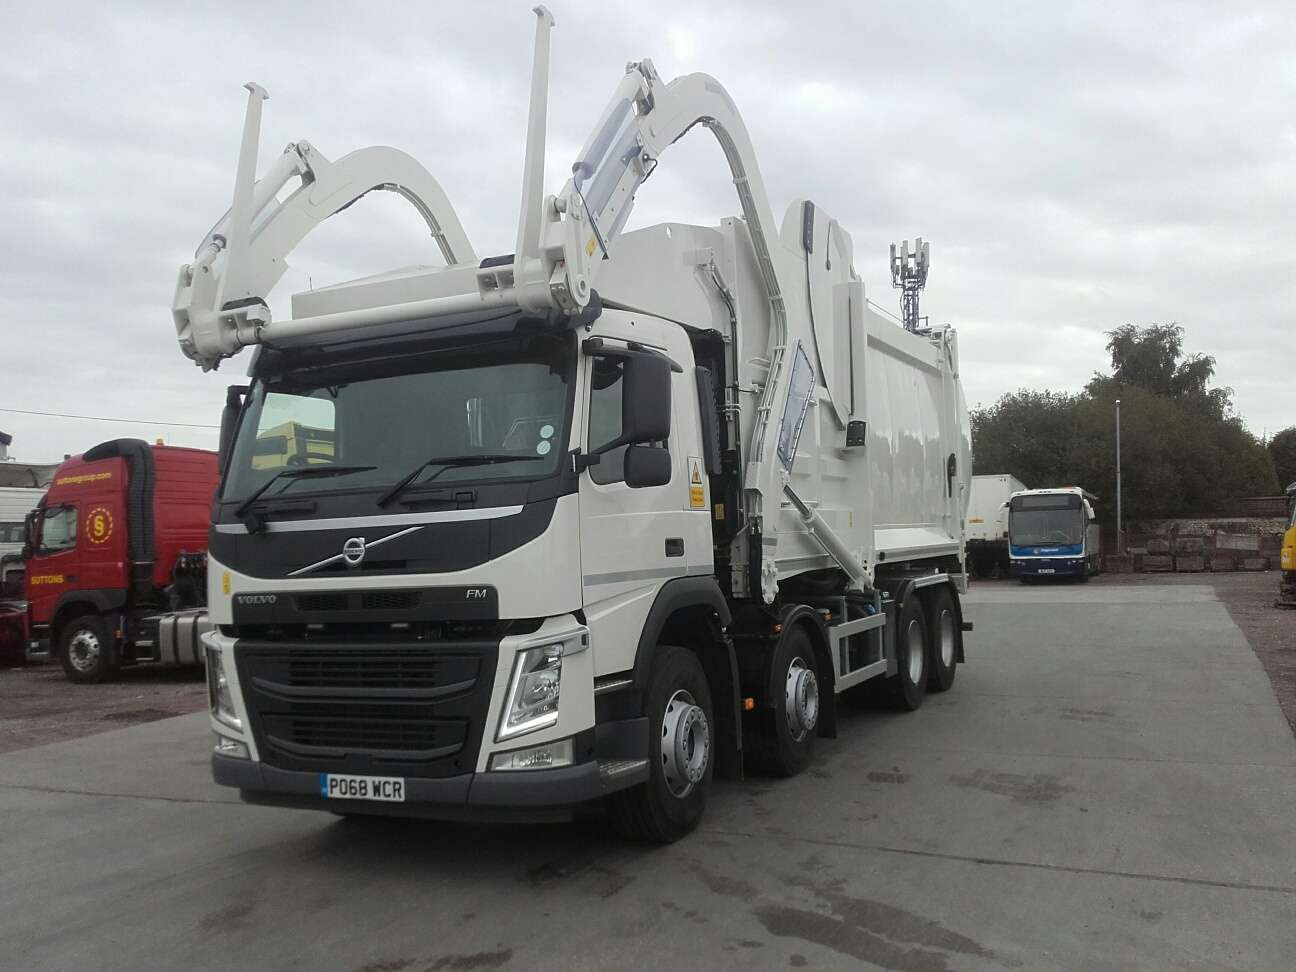 2018 Volvo FM 84 F-R 8x4 Front End Loader For Sale - Boughton |